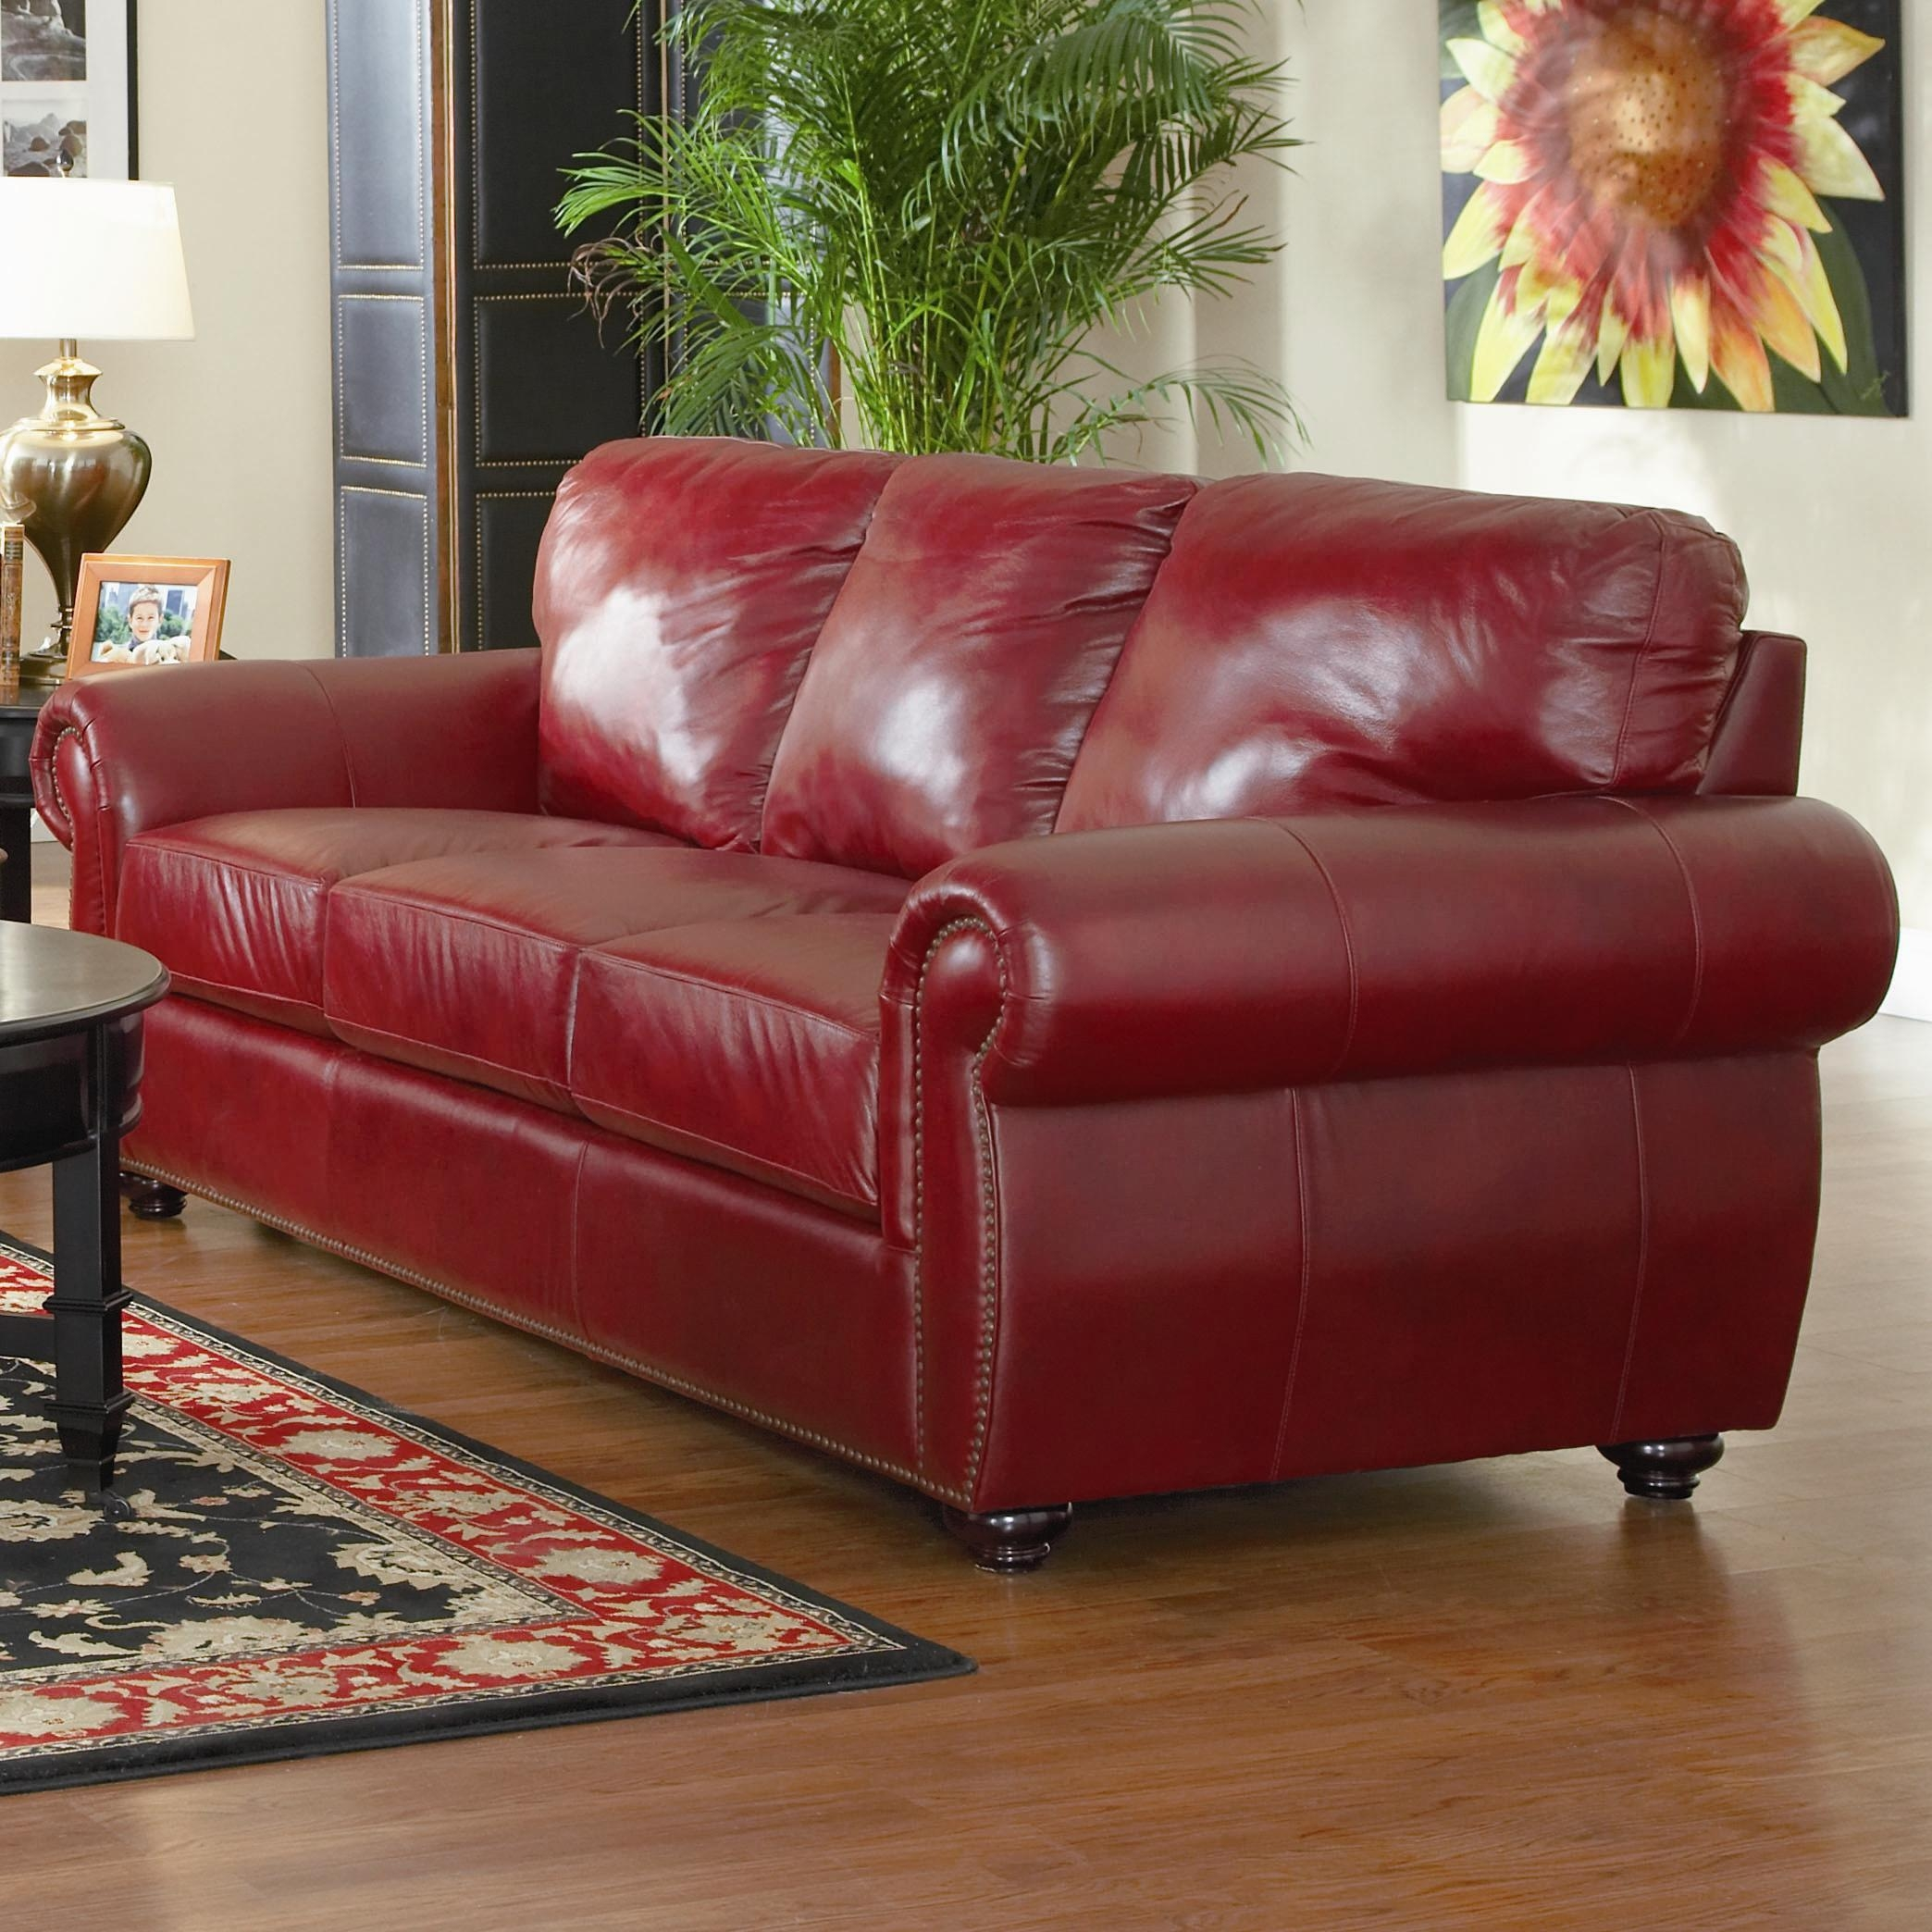 Furniture: Burgundy Loveseat | Burgundy Sofa | Red Sofa With Chaise With Regard To Red Sofa Chairs (Image 8 of 20)